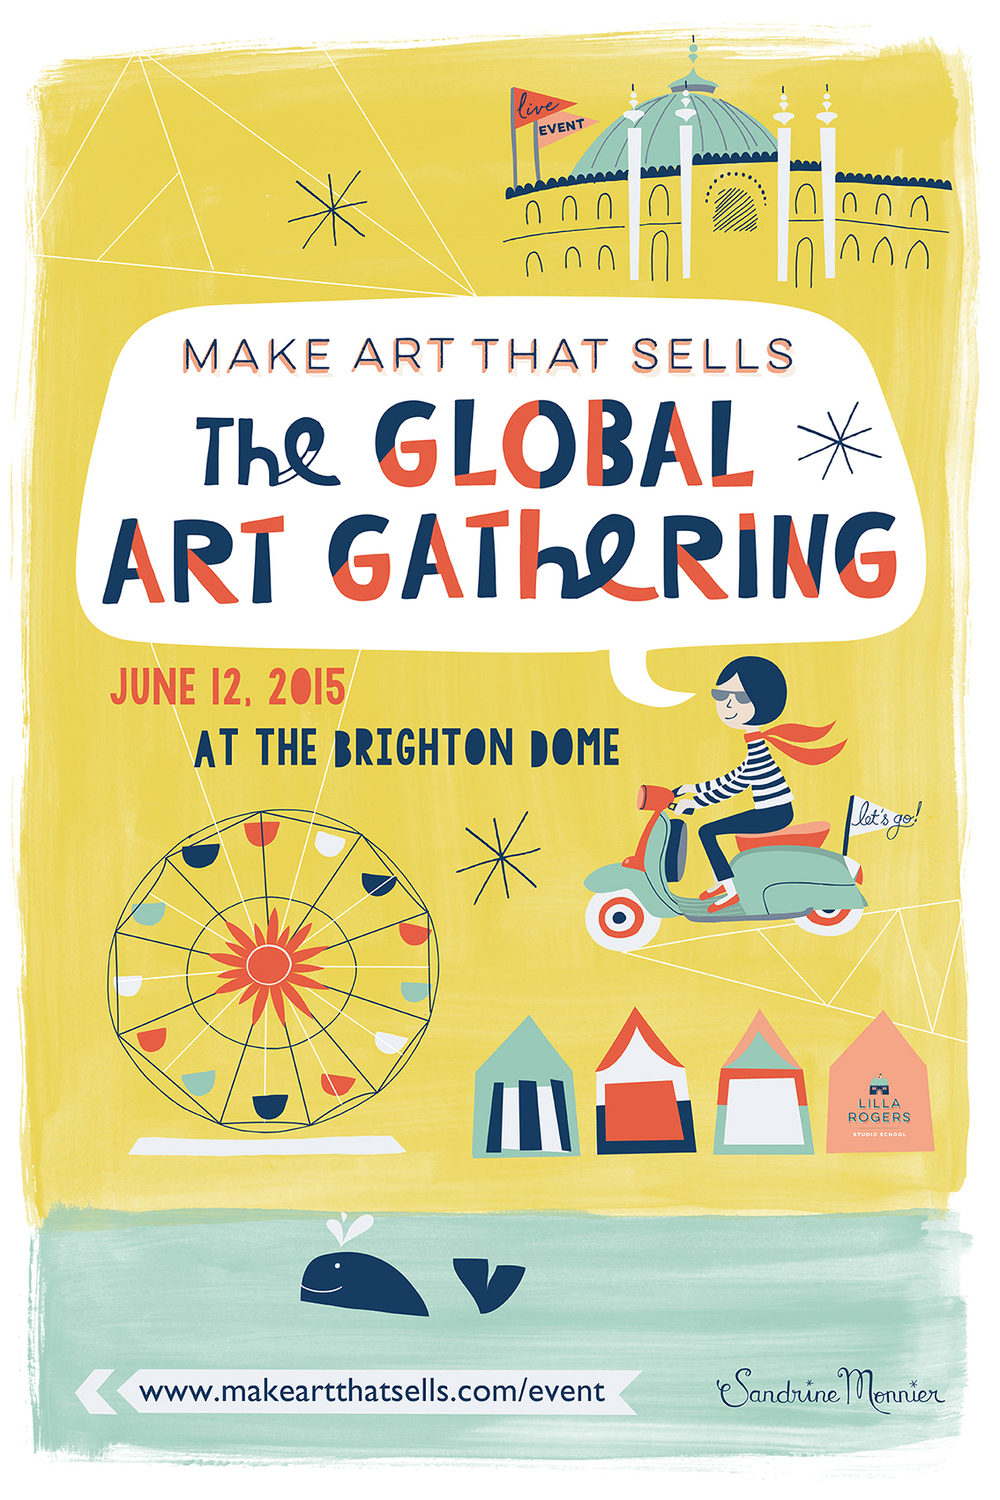 The global art gathering project